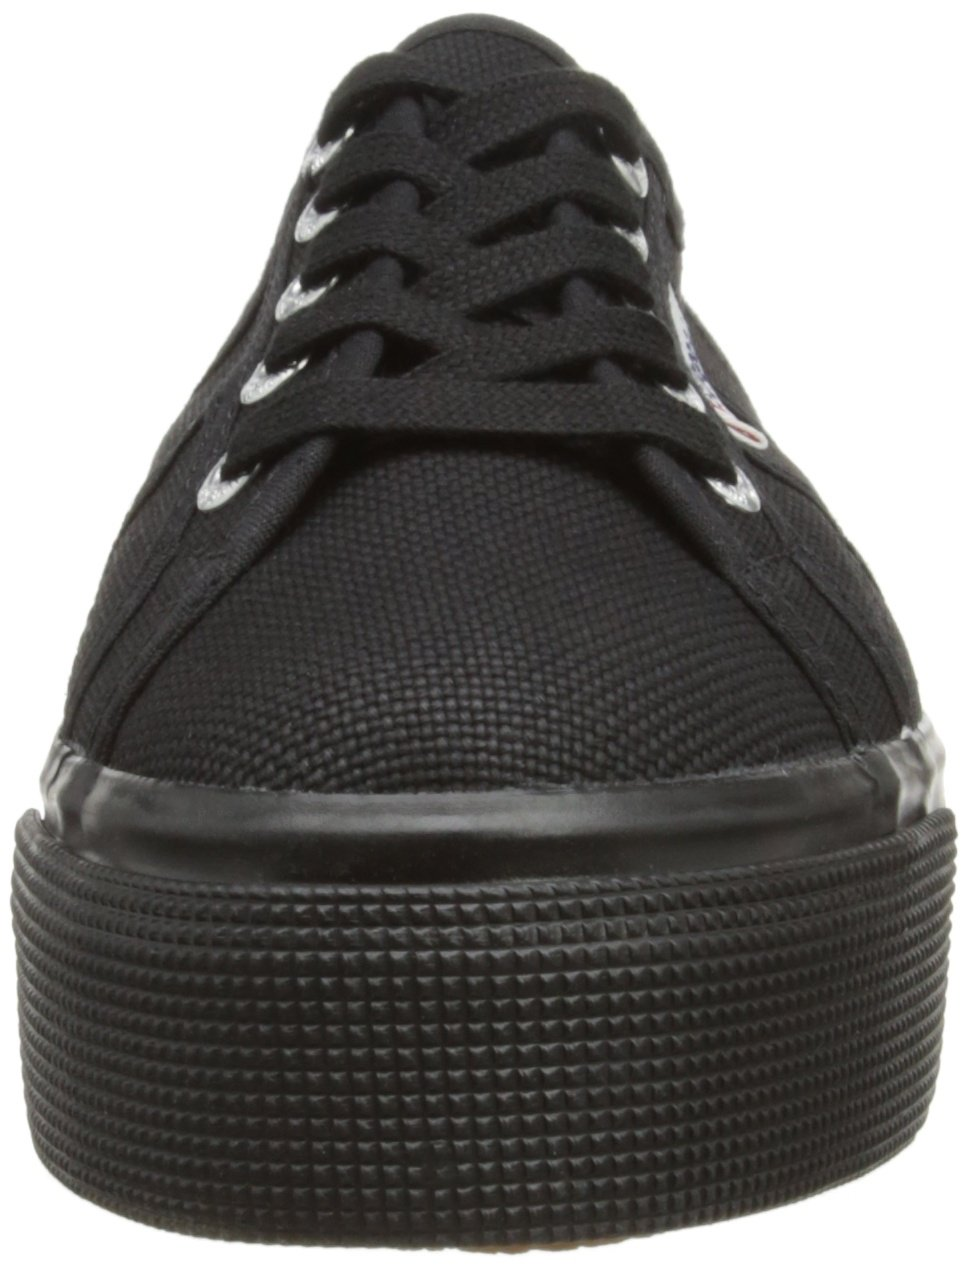 79c19102c96b ... Superga 2790 Linea Trainers up and Down Womens Trainers Linea  B00JXN8VHE 5 M US